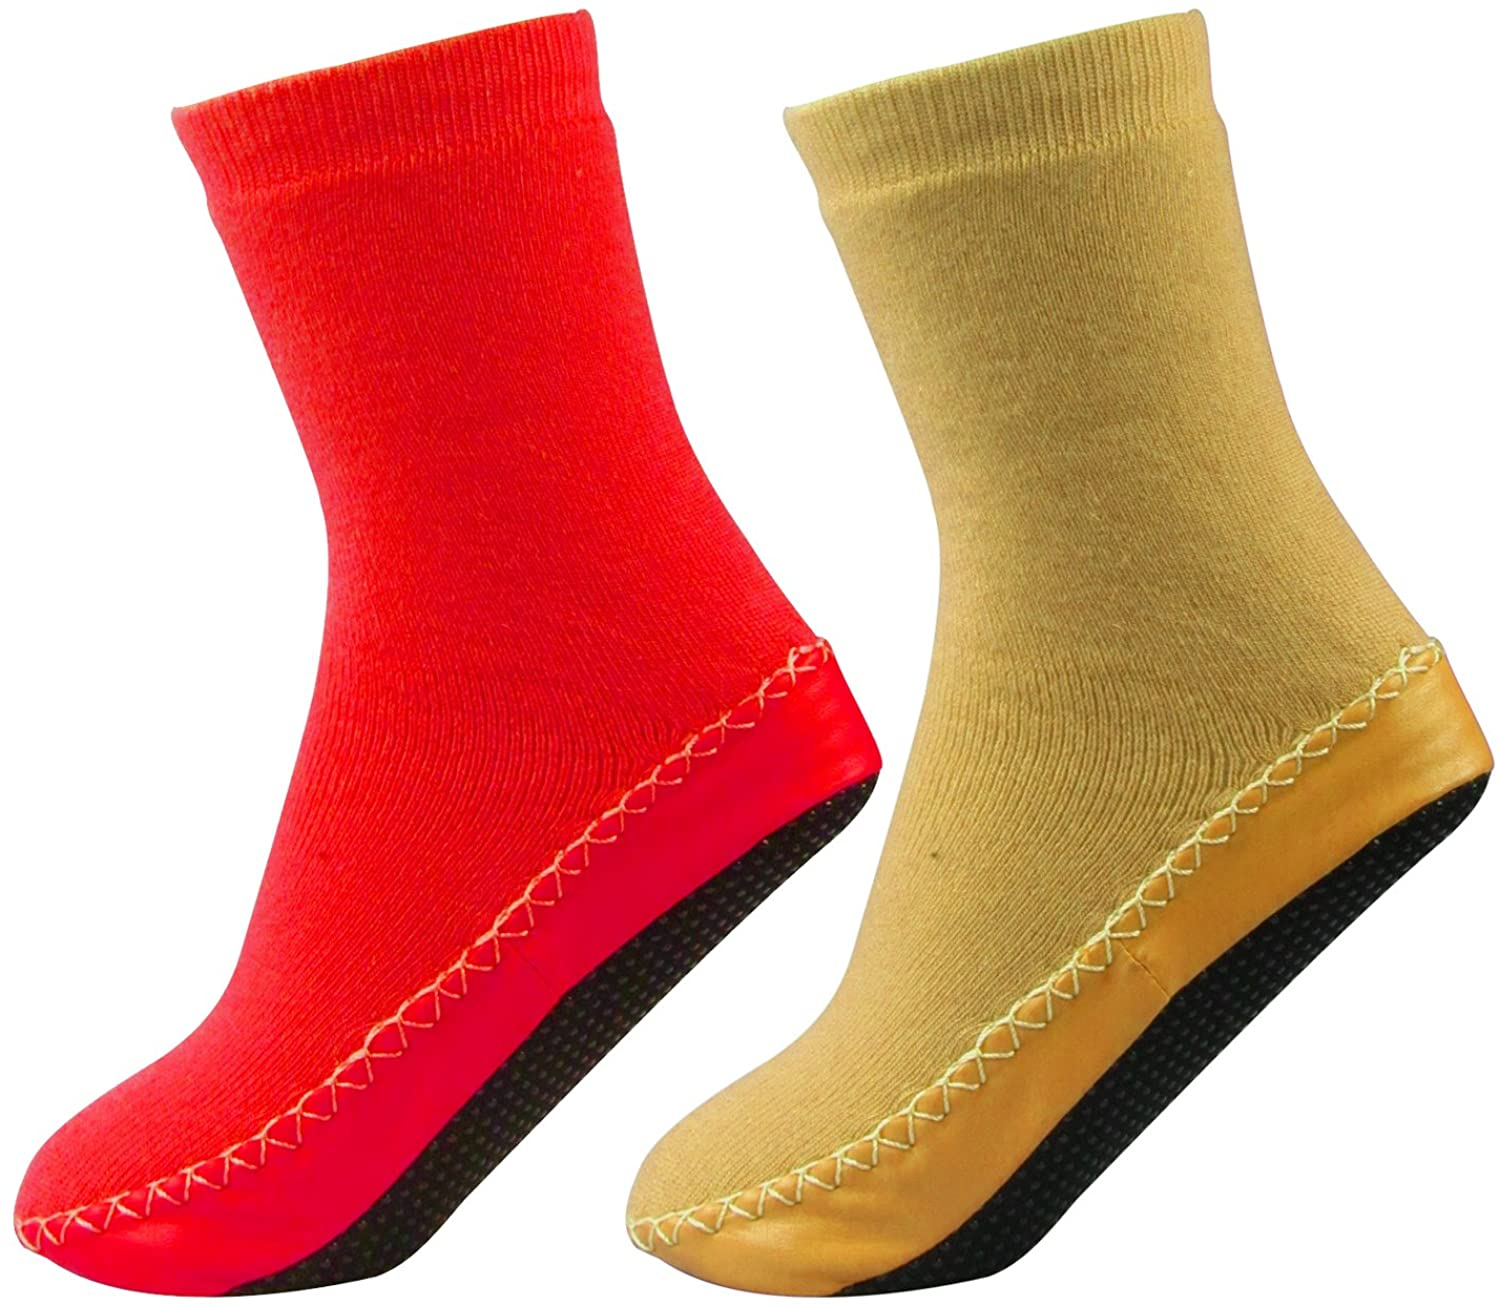 J. Ann 2 Pair/Pack Little Kids Slipper Socks With Non Slip, Red/Beige